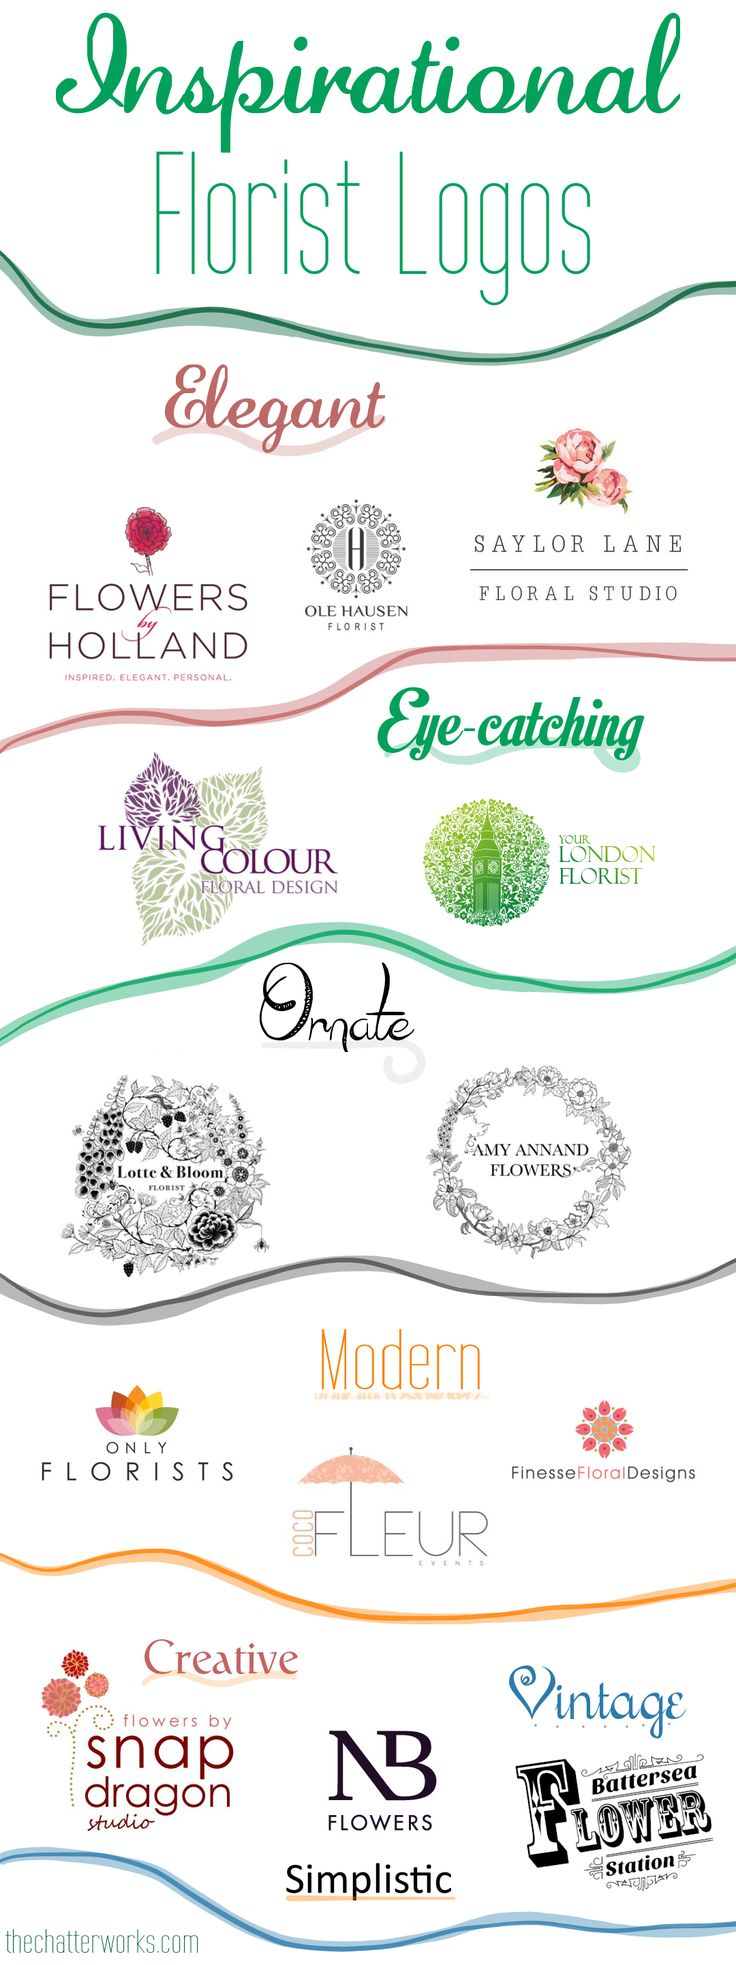 Amazing, Inspirational Florist Logos! | An infographic of elegant, eye-catching, ornate, modern, simplistic, creative and vintage florist logos from around the globe for your inspiration. #floristlogos #floristry #flowerbusiness